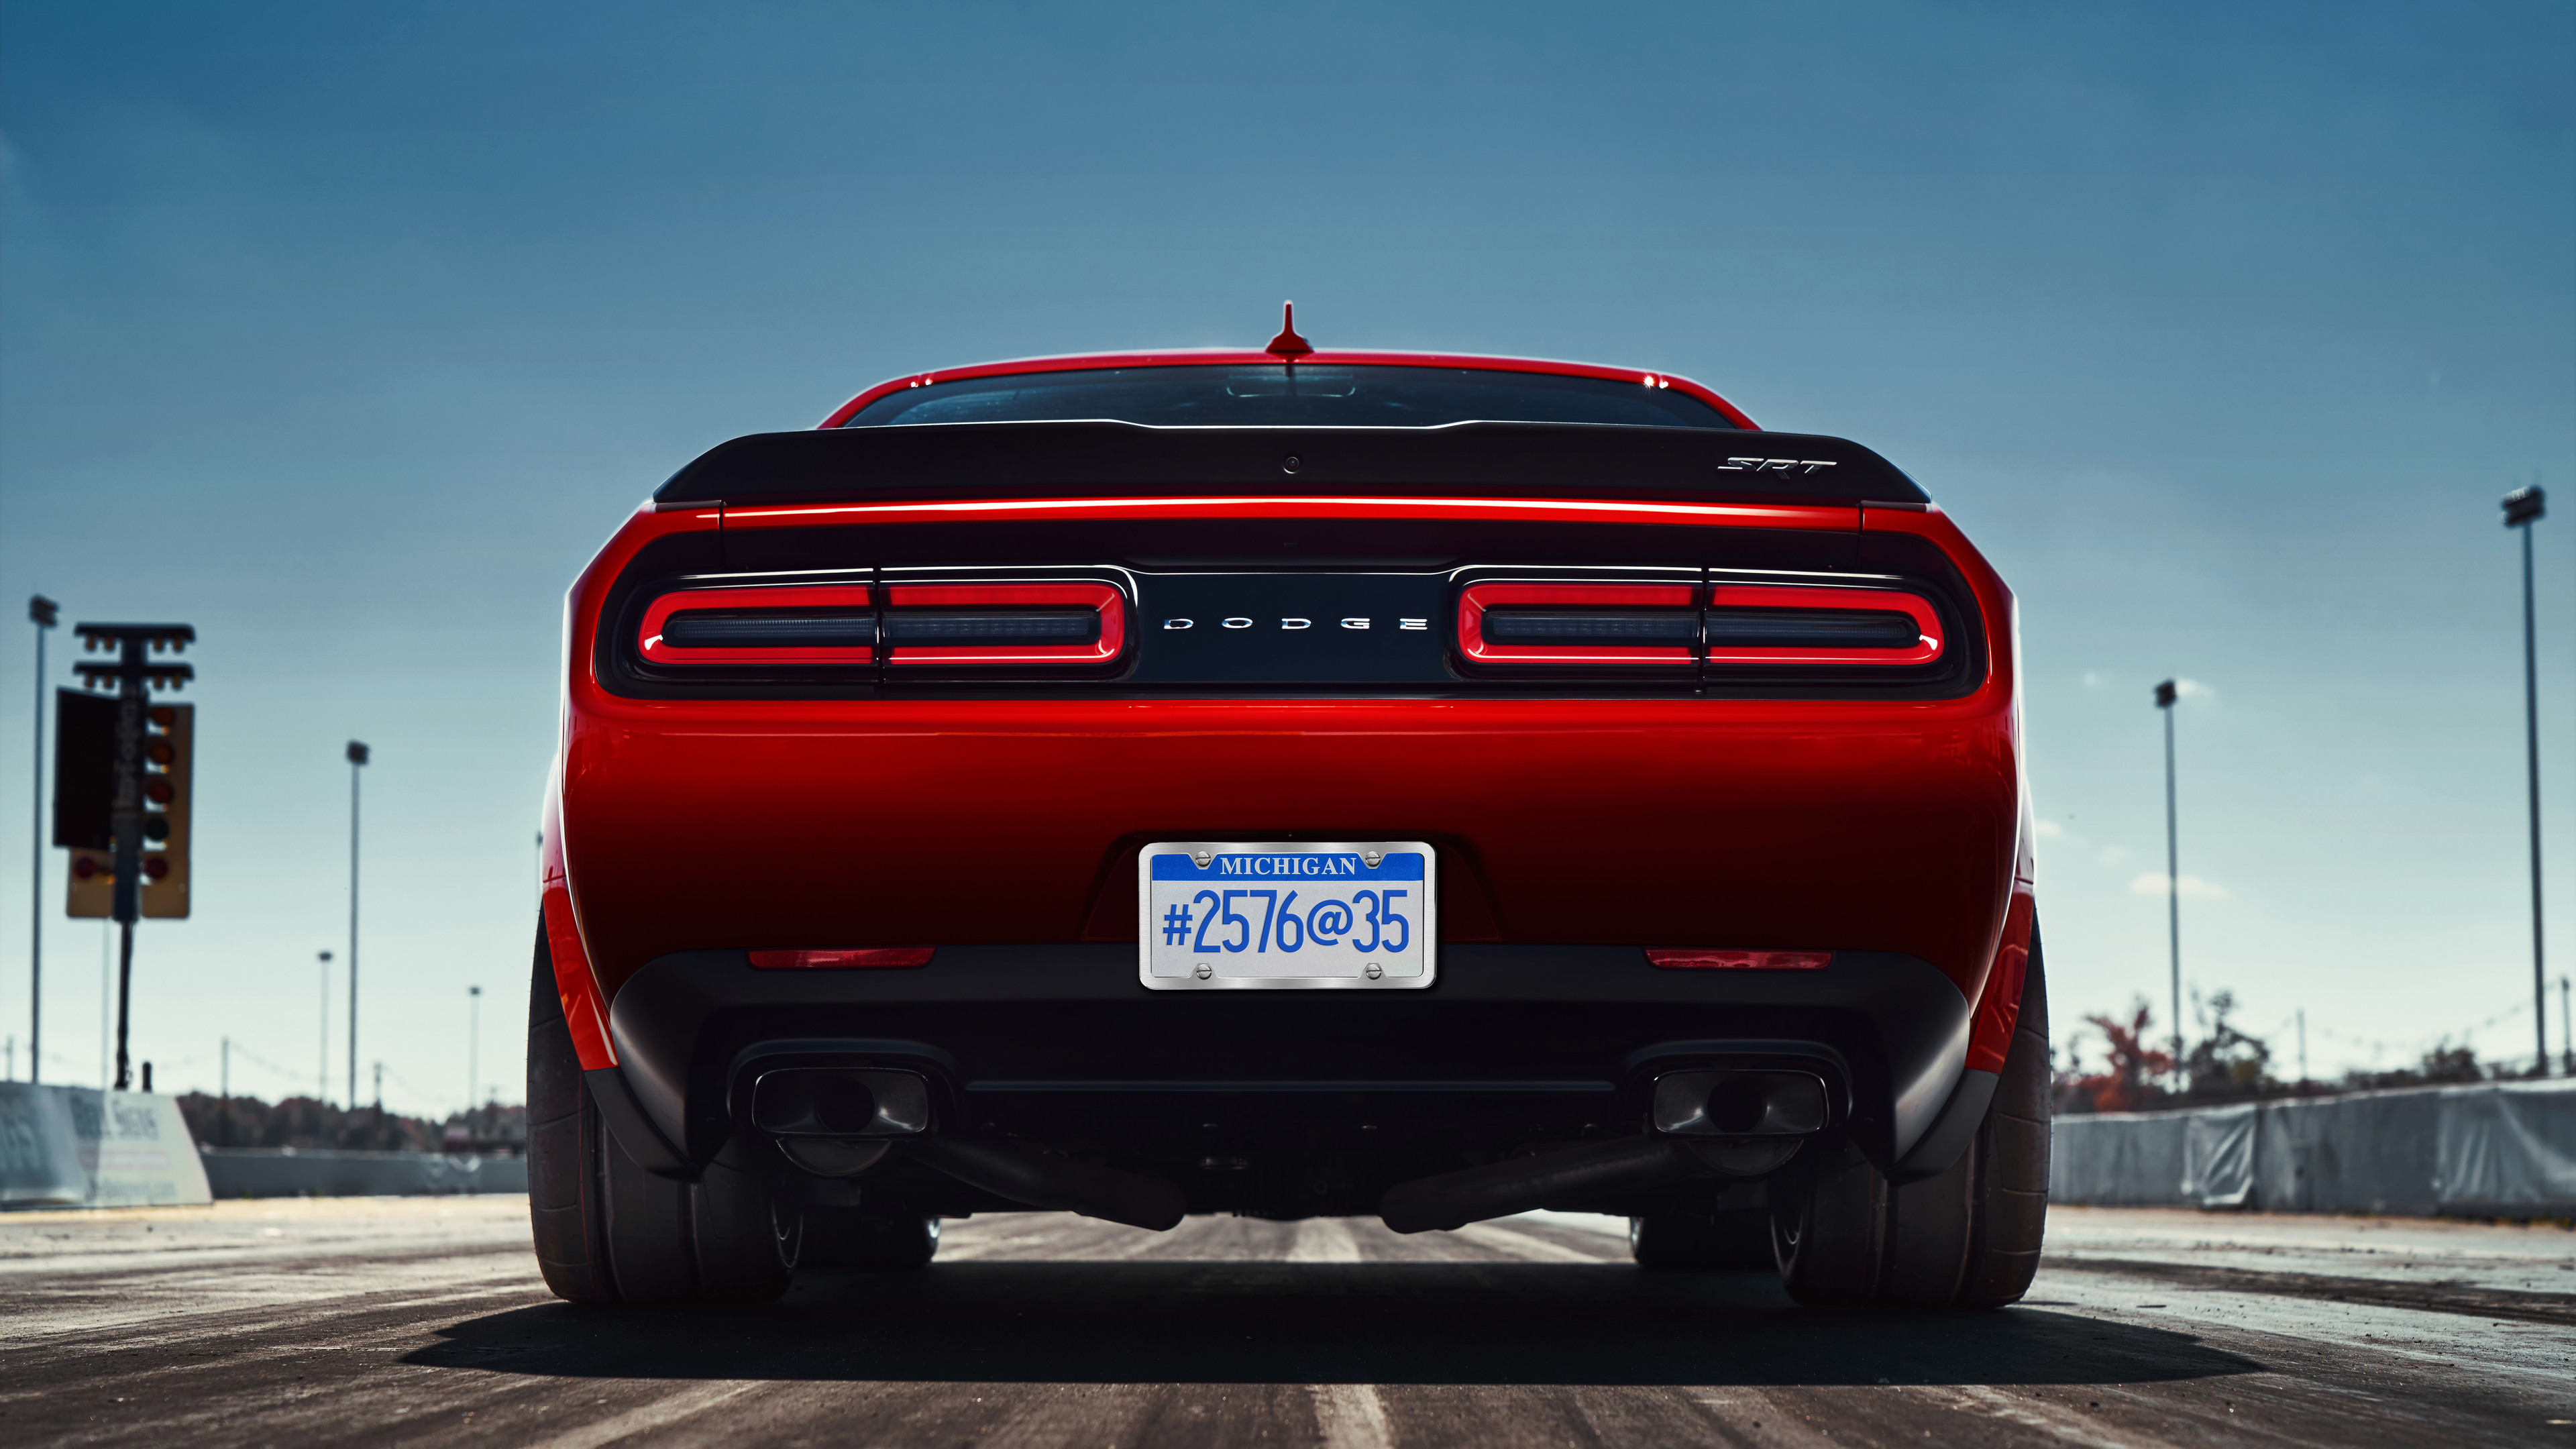 2018 dodge challenger srt 1539105055 - 2018 Dodge Challenger SRT - hd-wallpapers, dodge challenger wallpapers, cars wallpapers, 8k wallpapers, 5k wallpapers, 4k-wallpapers, 2018 cars wallpapers